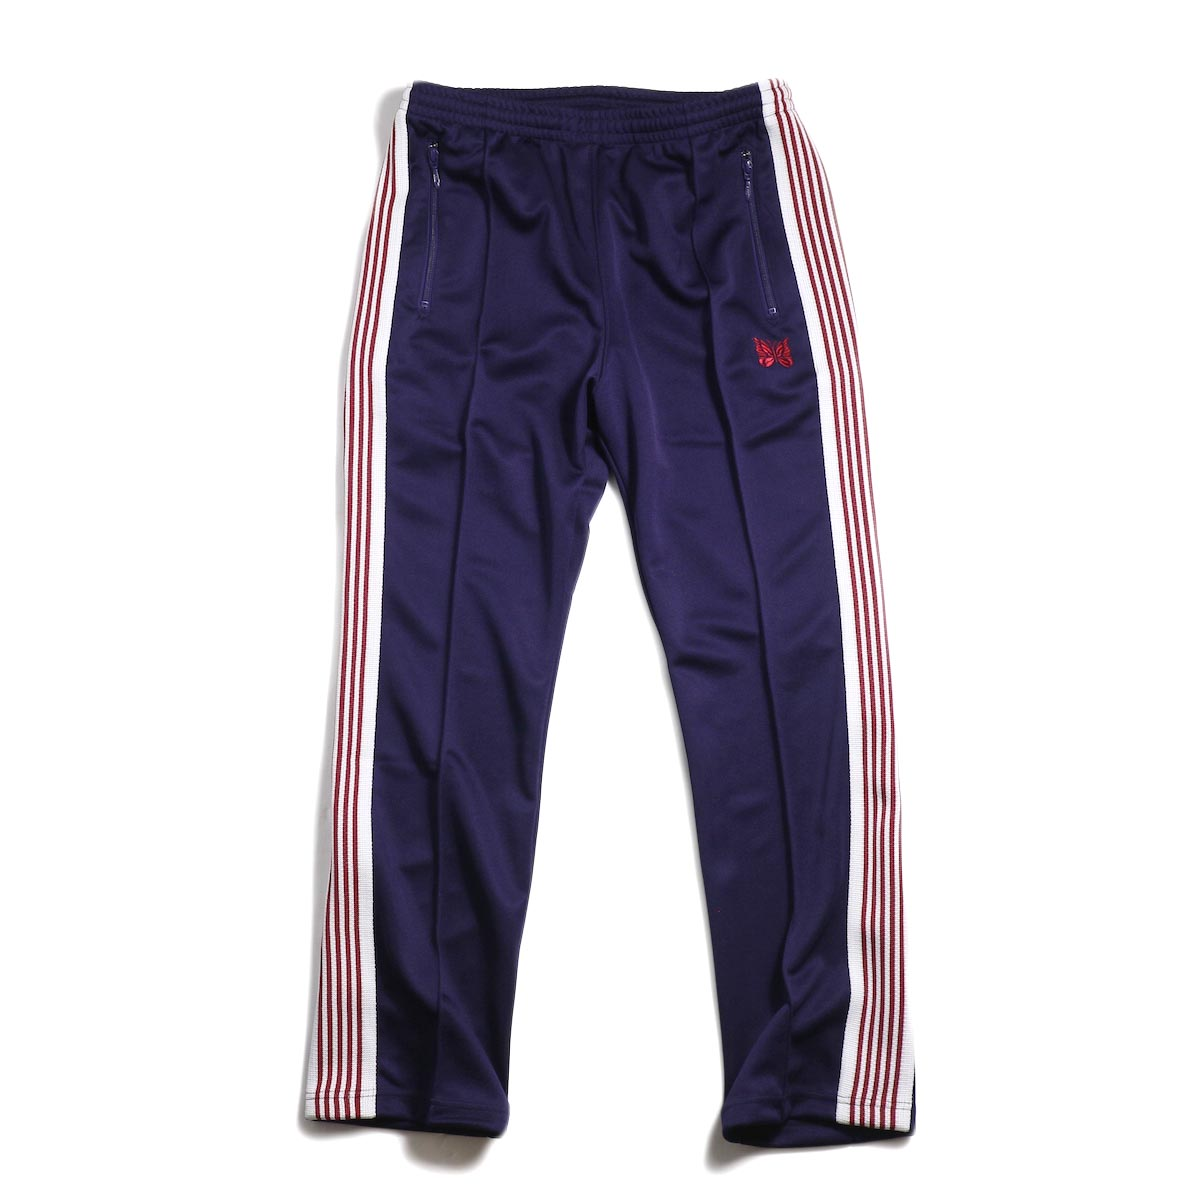 Needles / Narrow Track Pant -Poly Smooth (Eggplant)